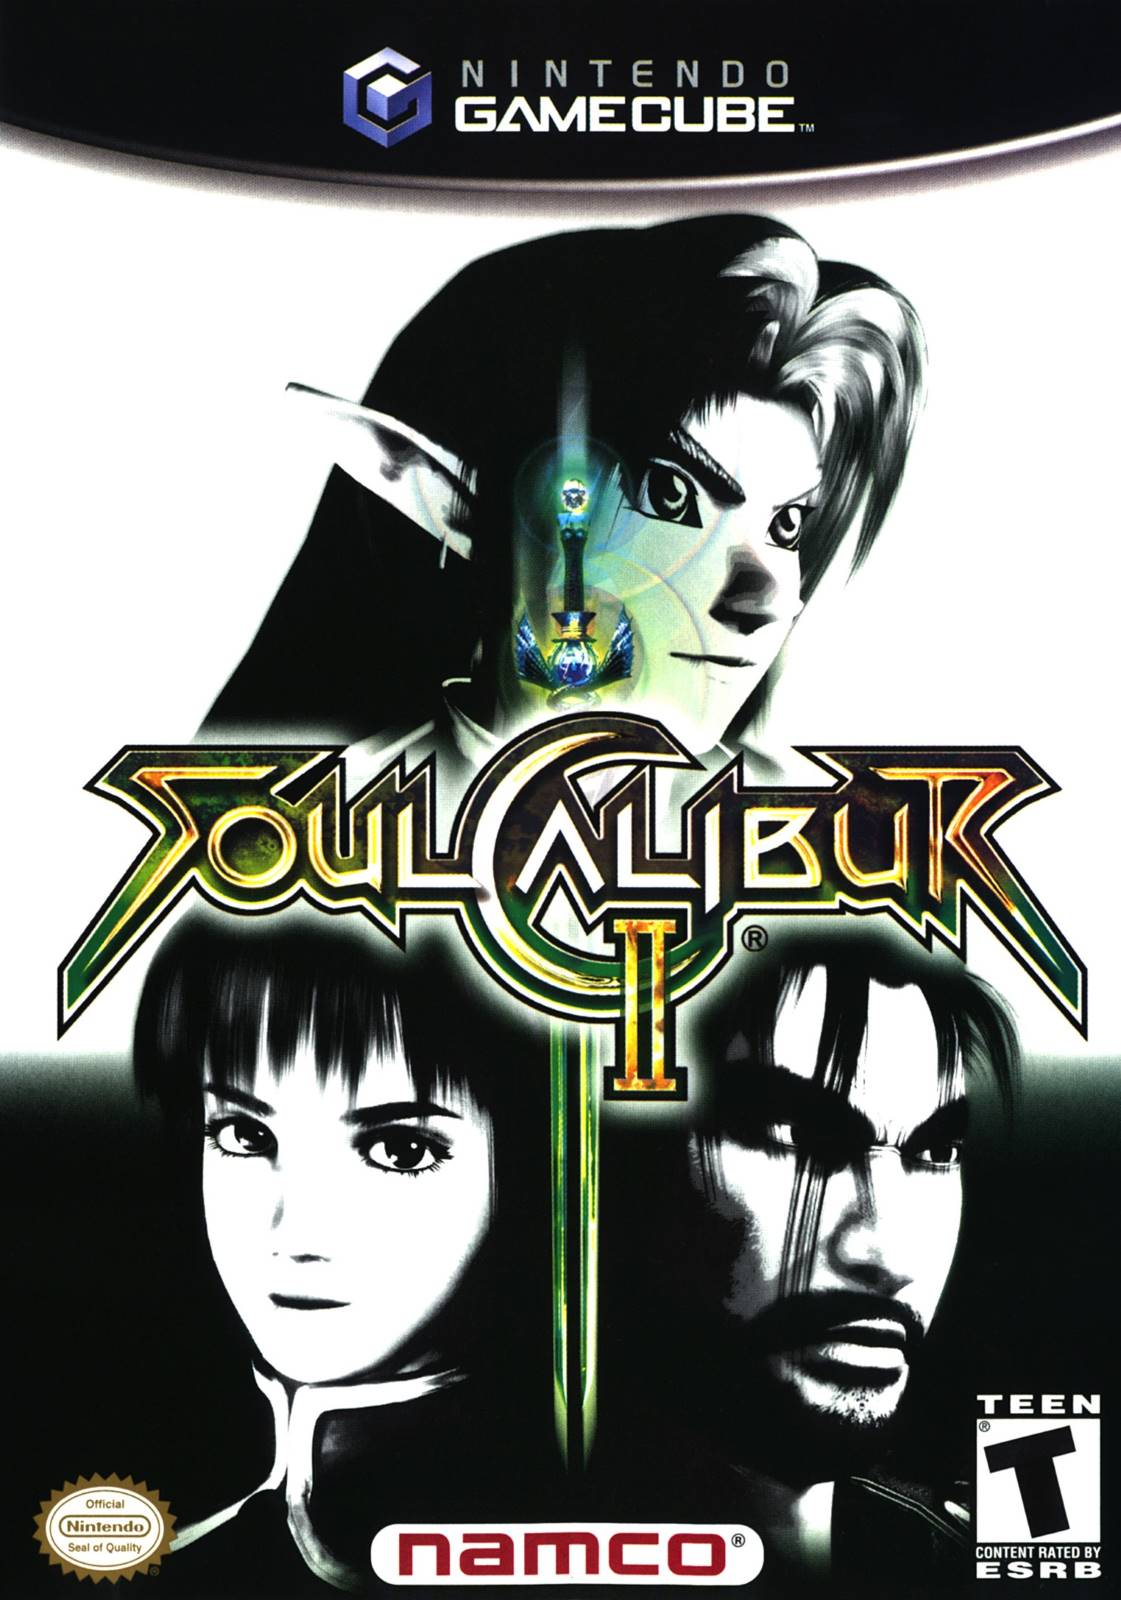 SoulCaliburII GameCube cover.jpg